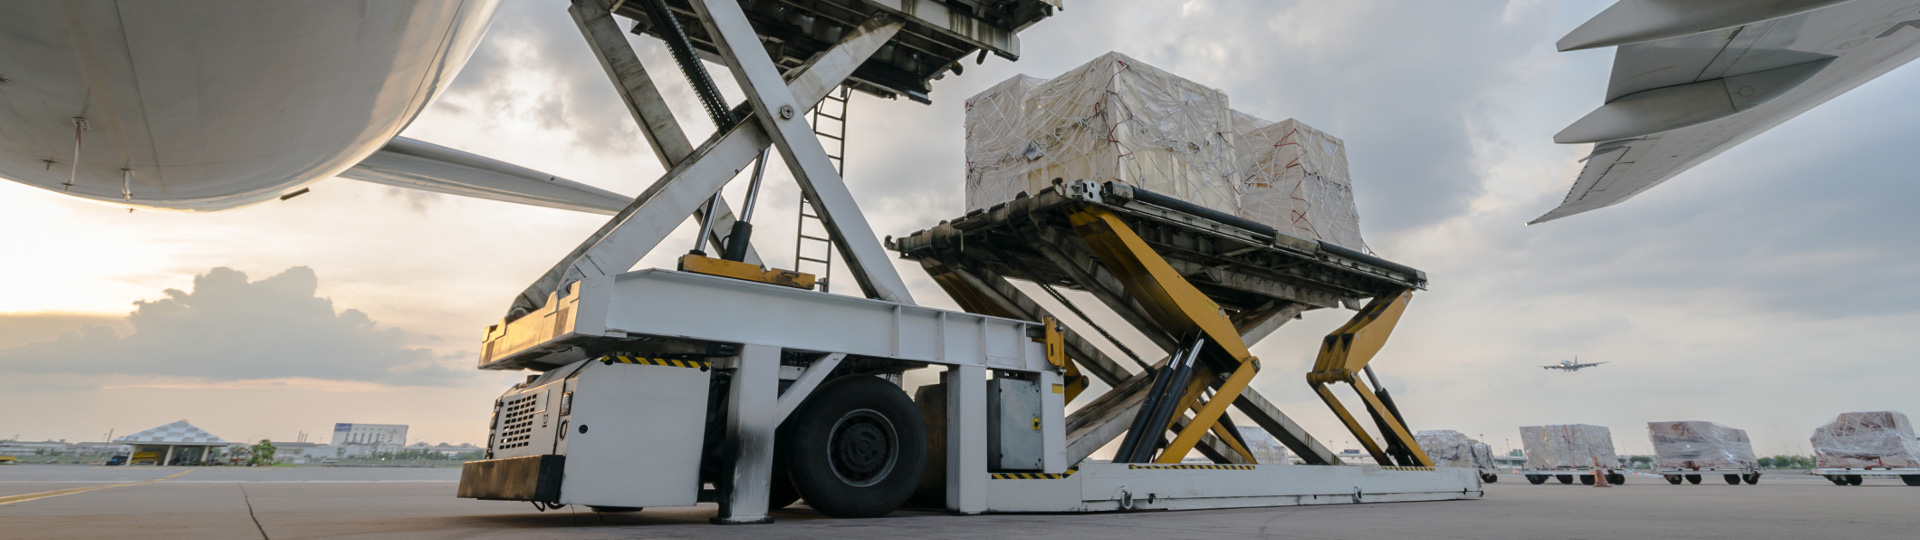 A cargo loader lifting up the cargo underneath an aircraft.